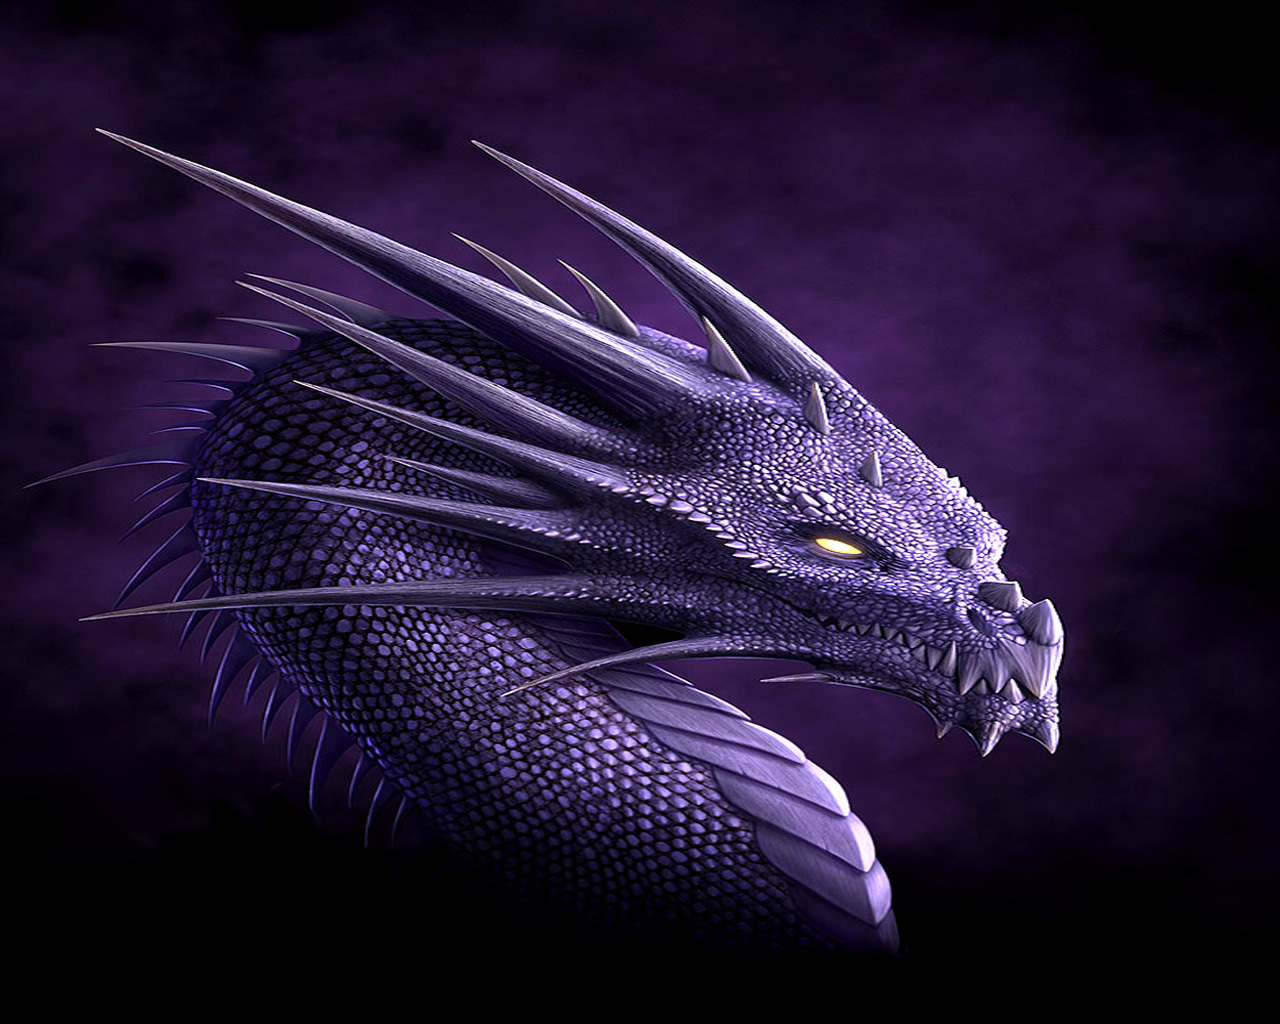 Griffins And Dragons Images Dragon HD Wallpaper Background Photos